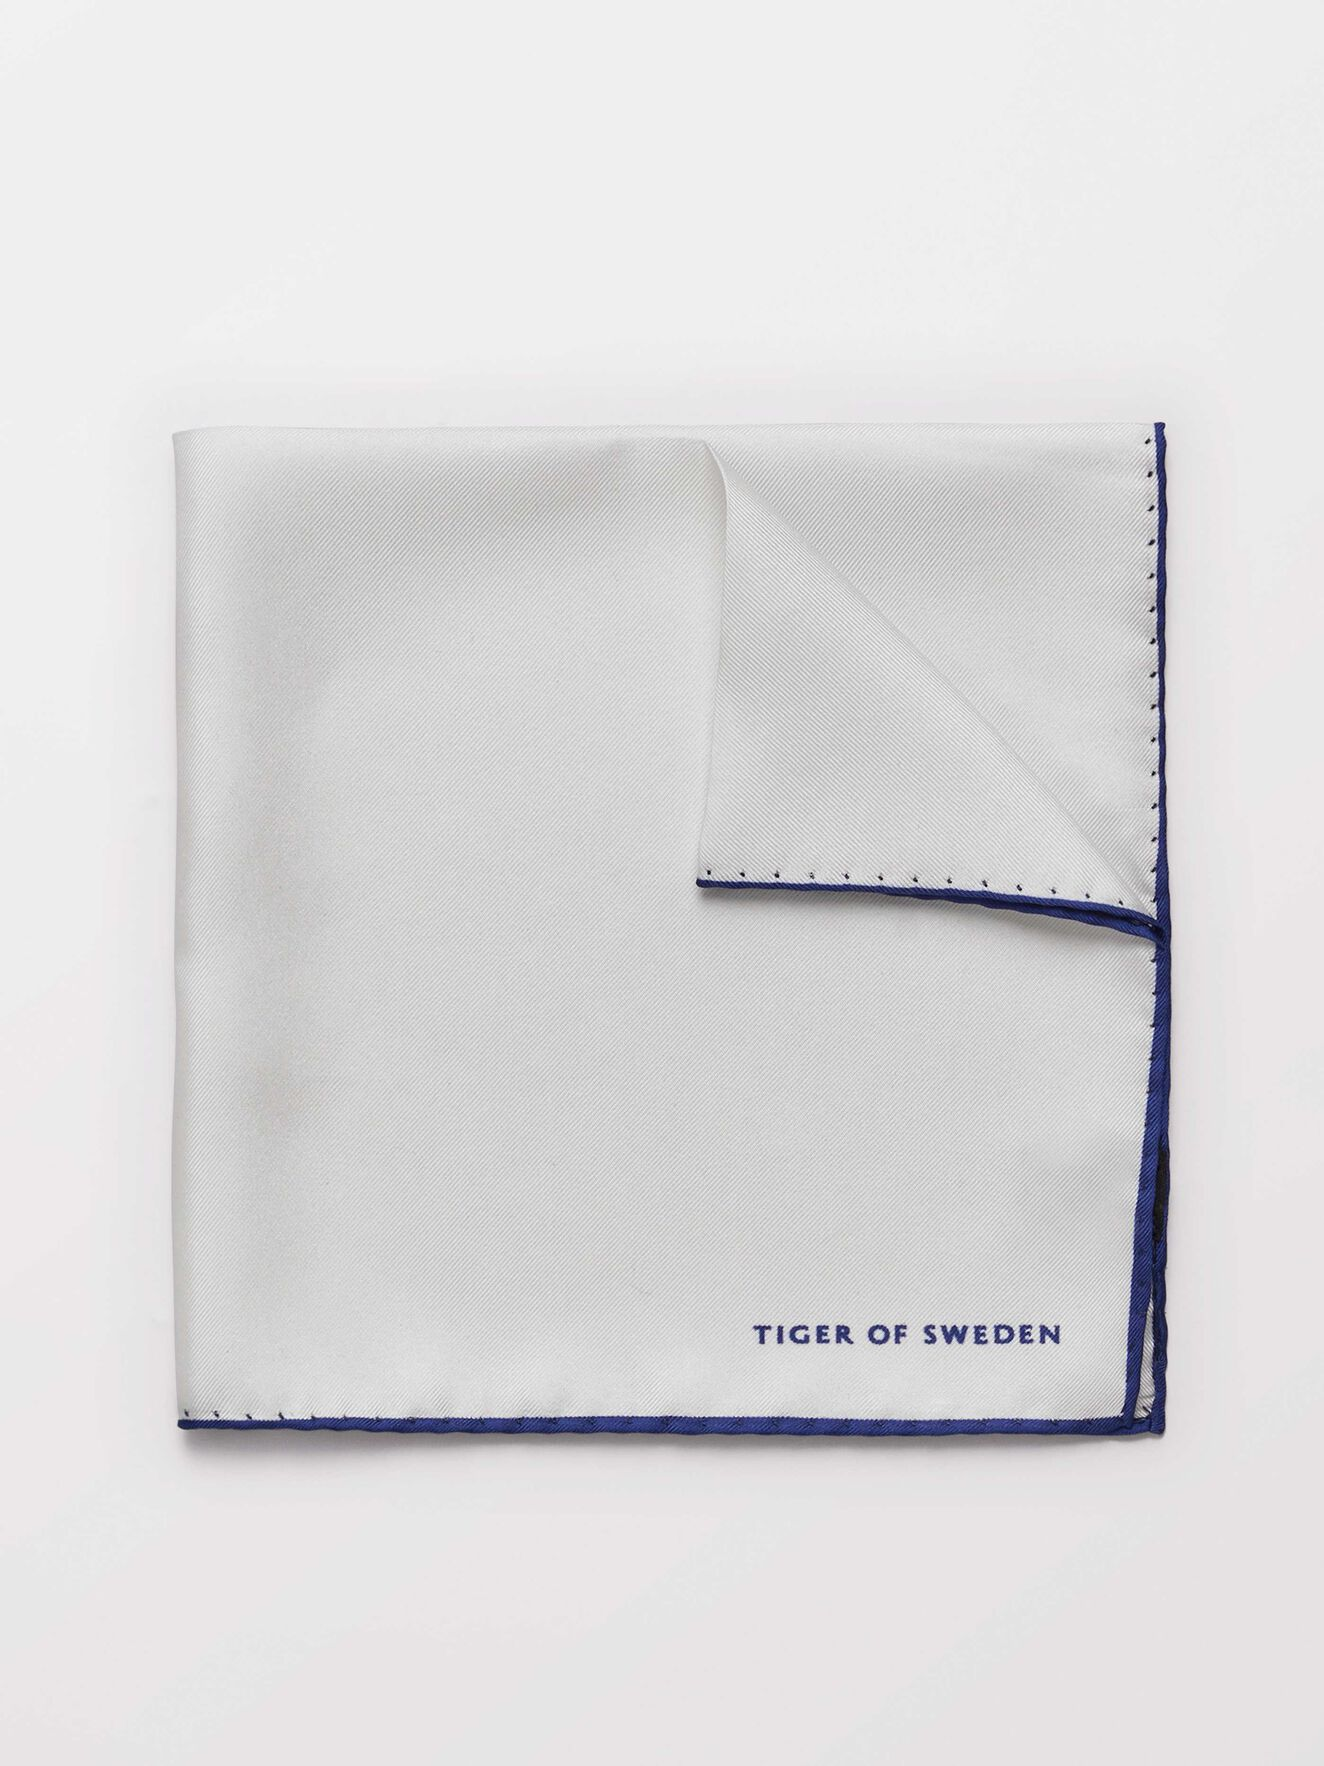 Penche Handkerchief in Pure white from Tiger of Sweden